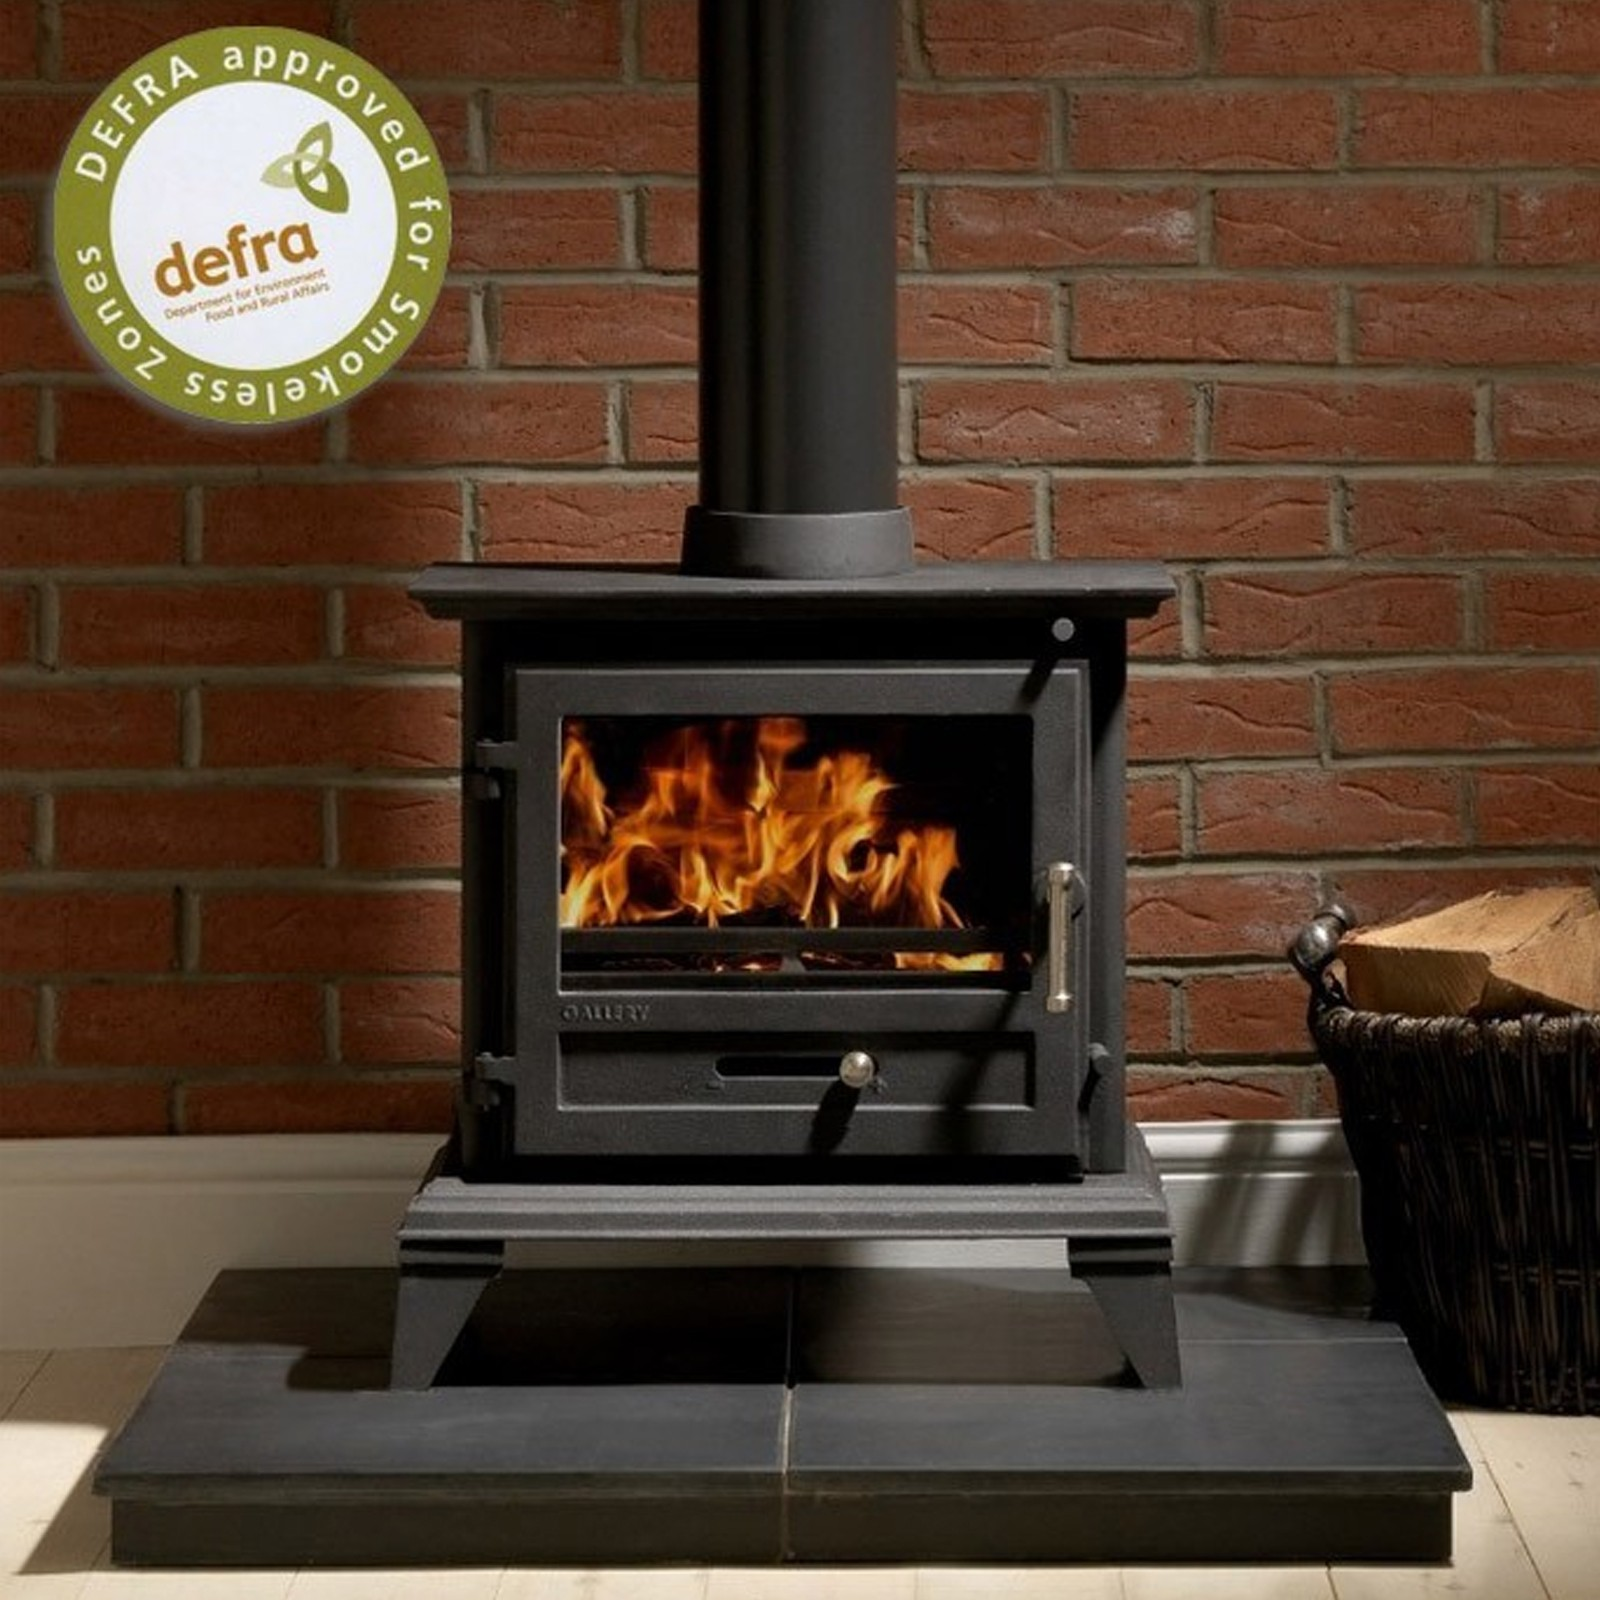 brilliant bargains gallery classic 8 cleanburn stove reduced